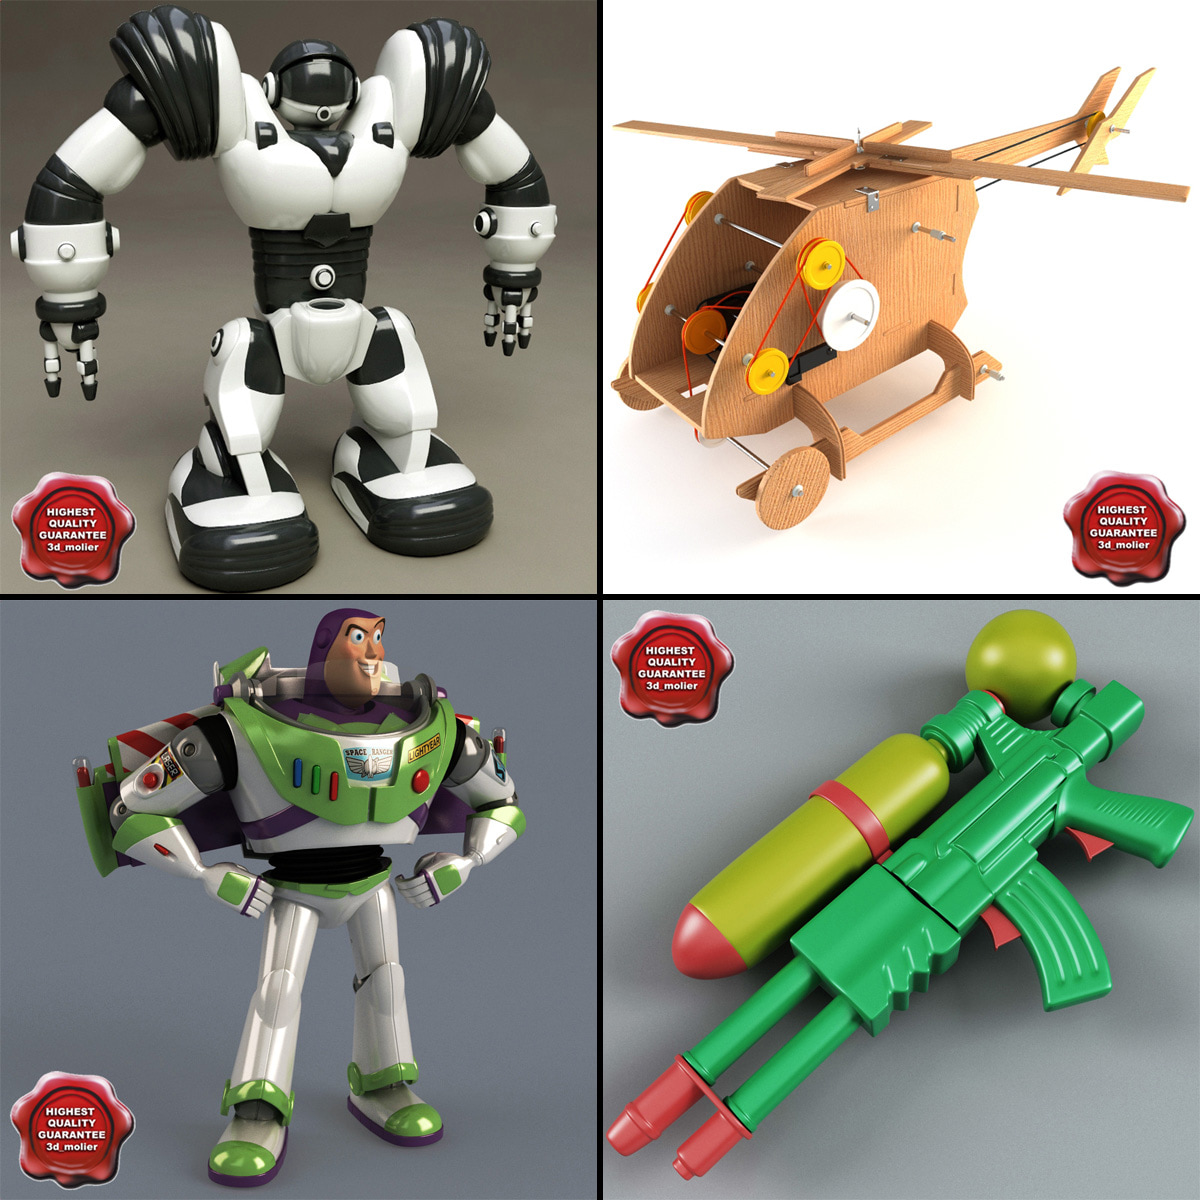 Toys_Collection_V3_000.jpg